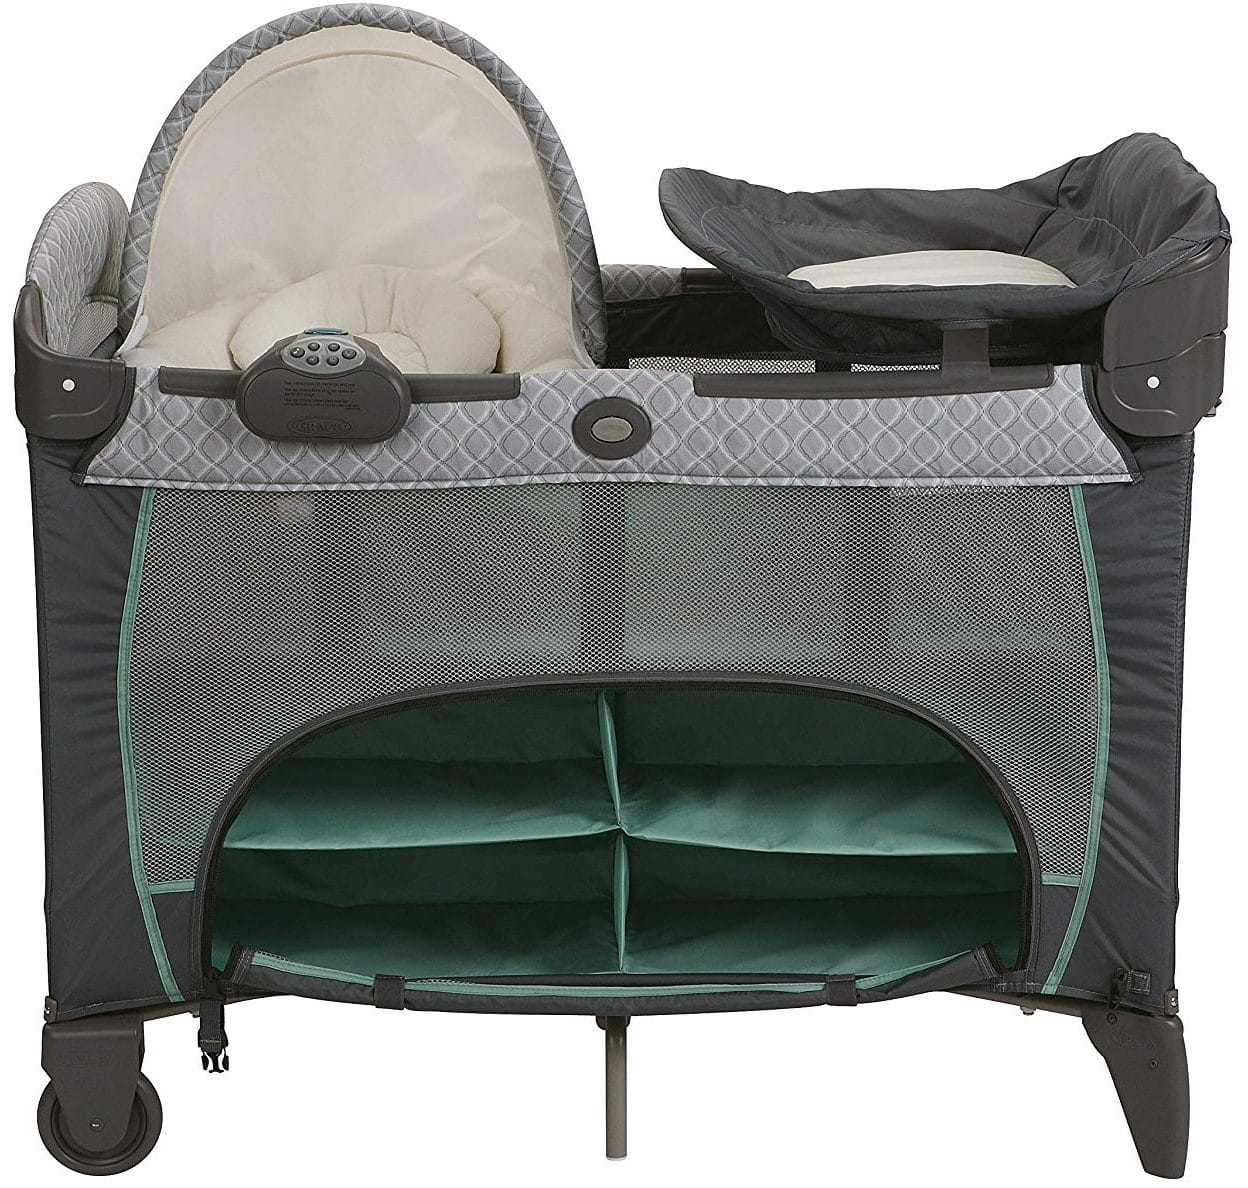 Graco Playard with Newborn Napperstation